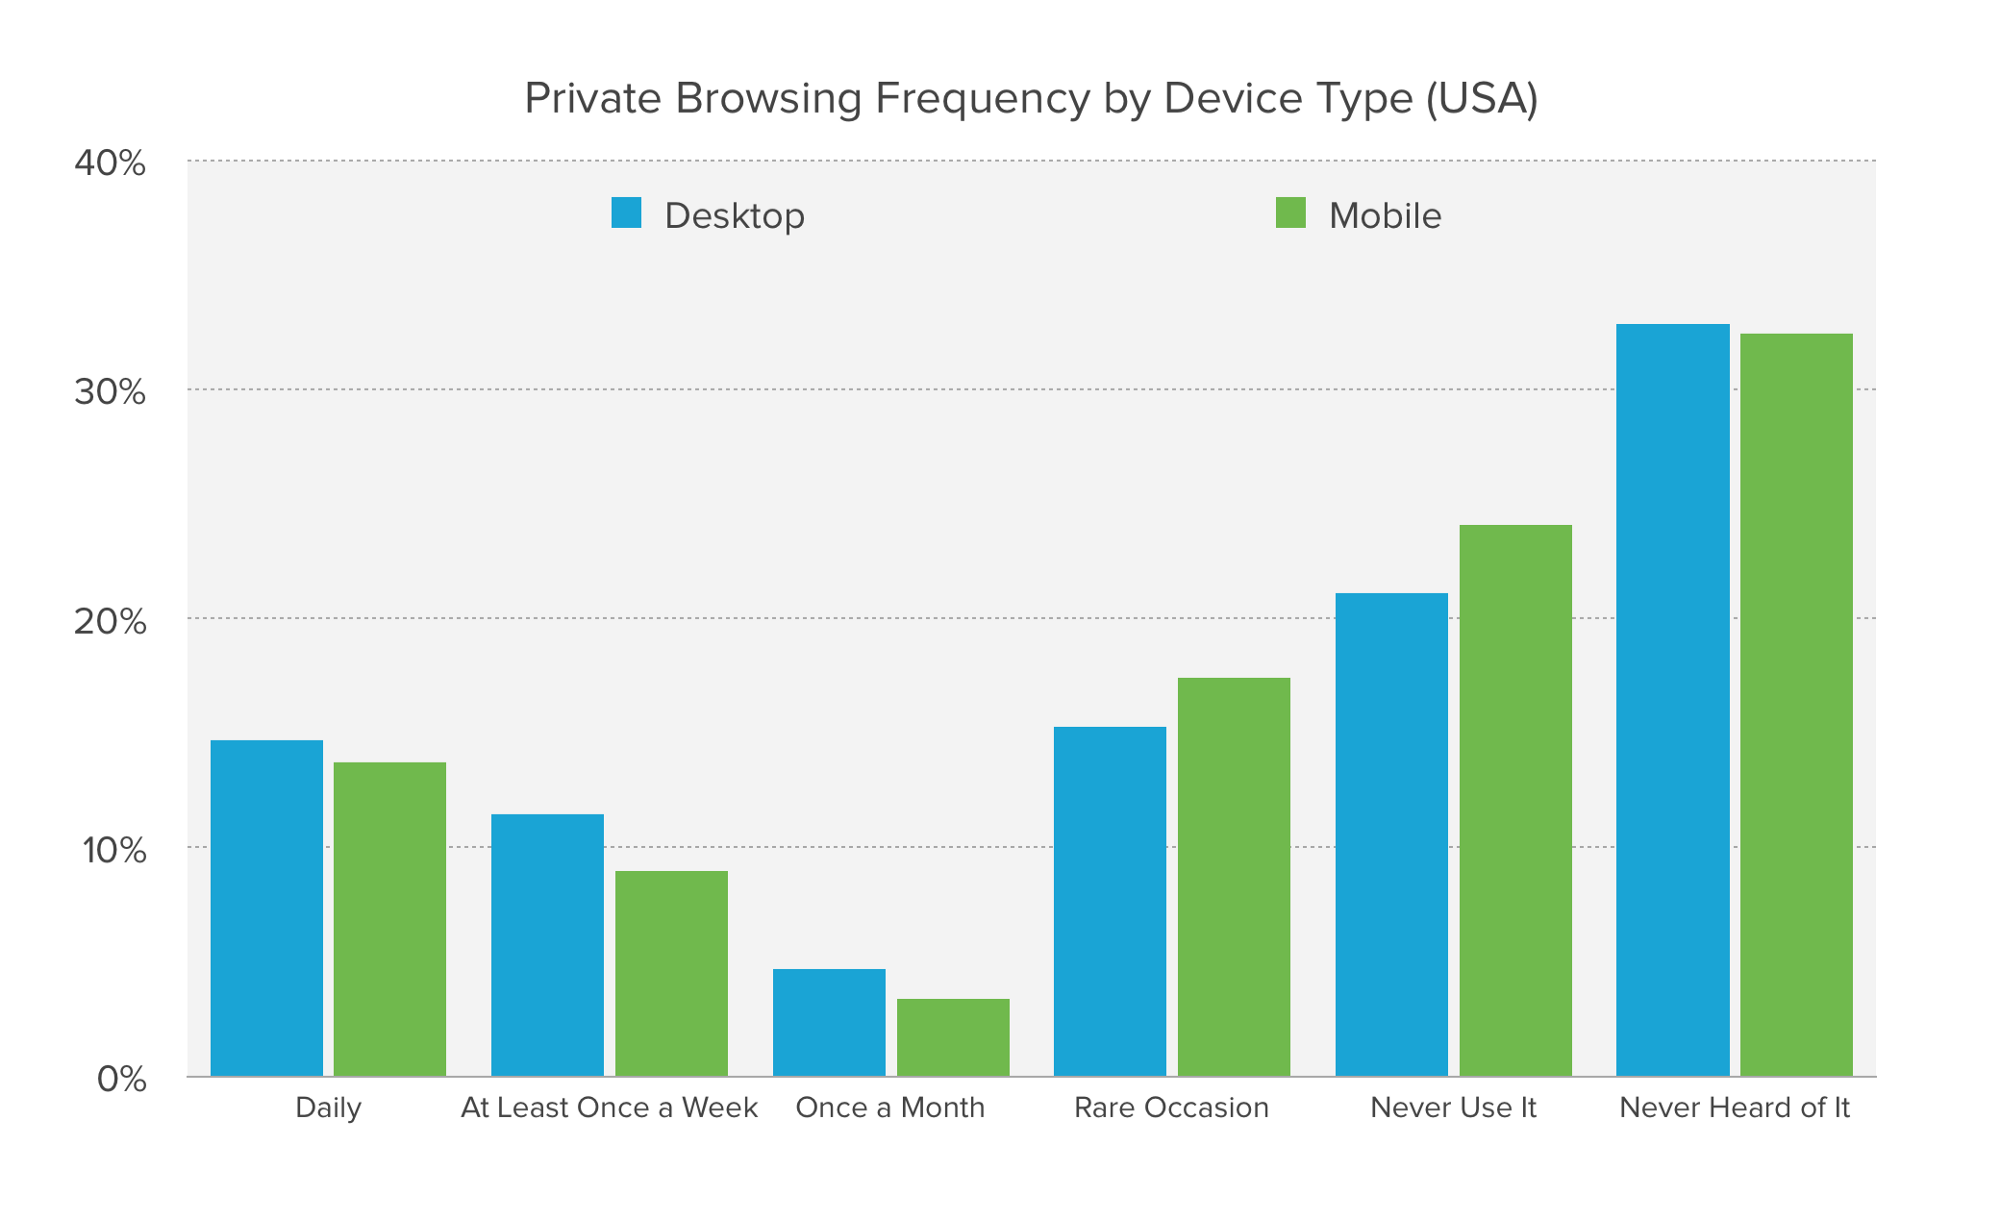 Chart showing private browsing frequency by device type.